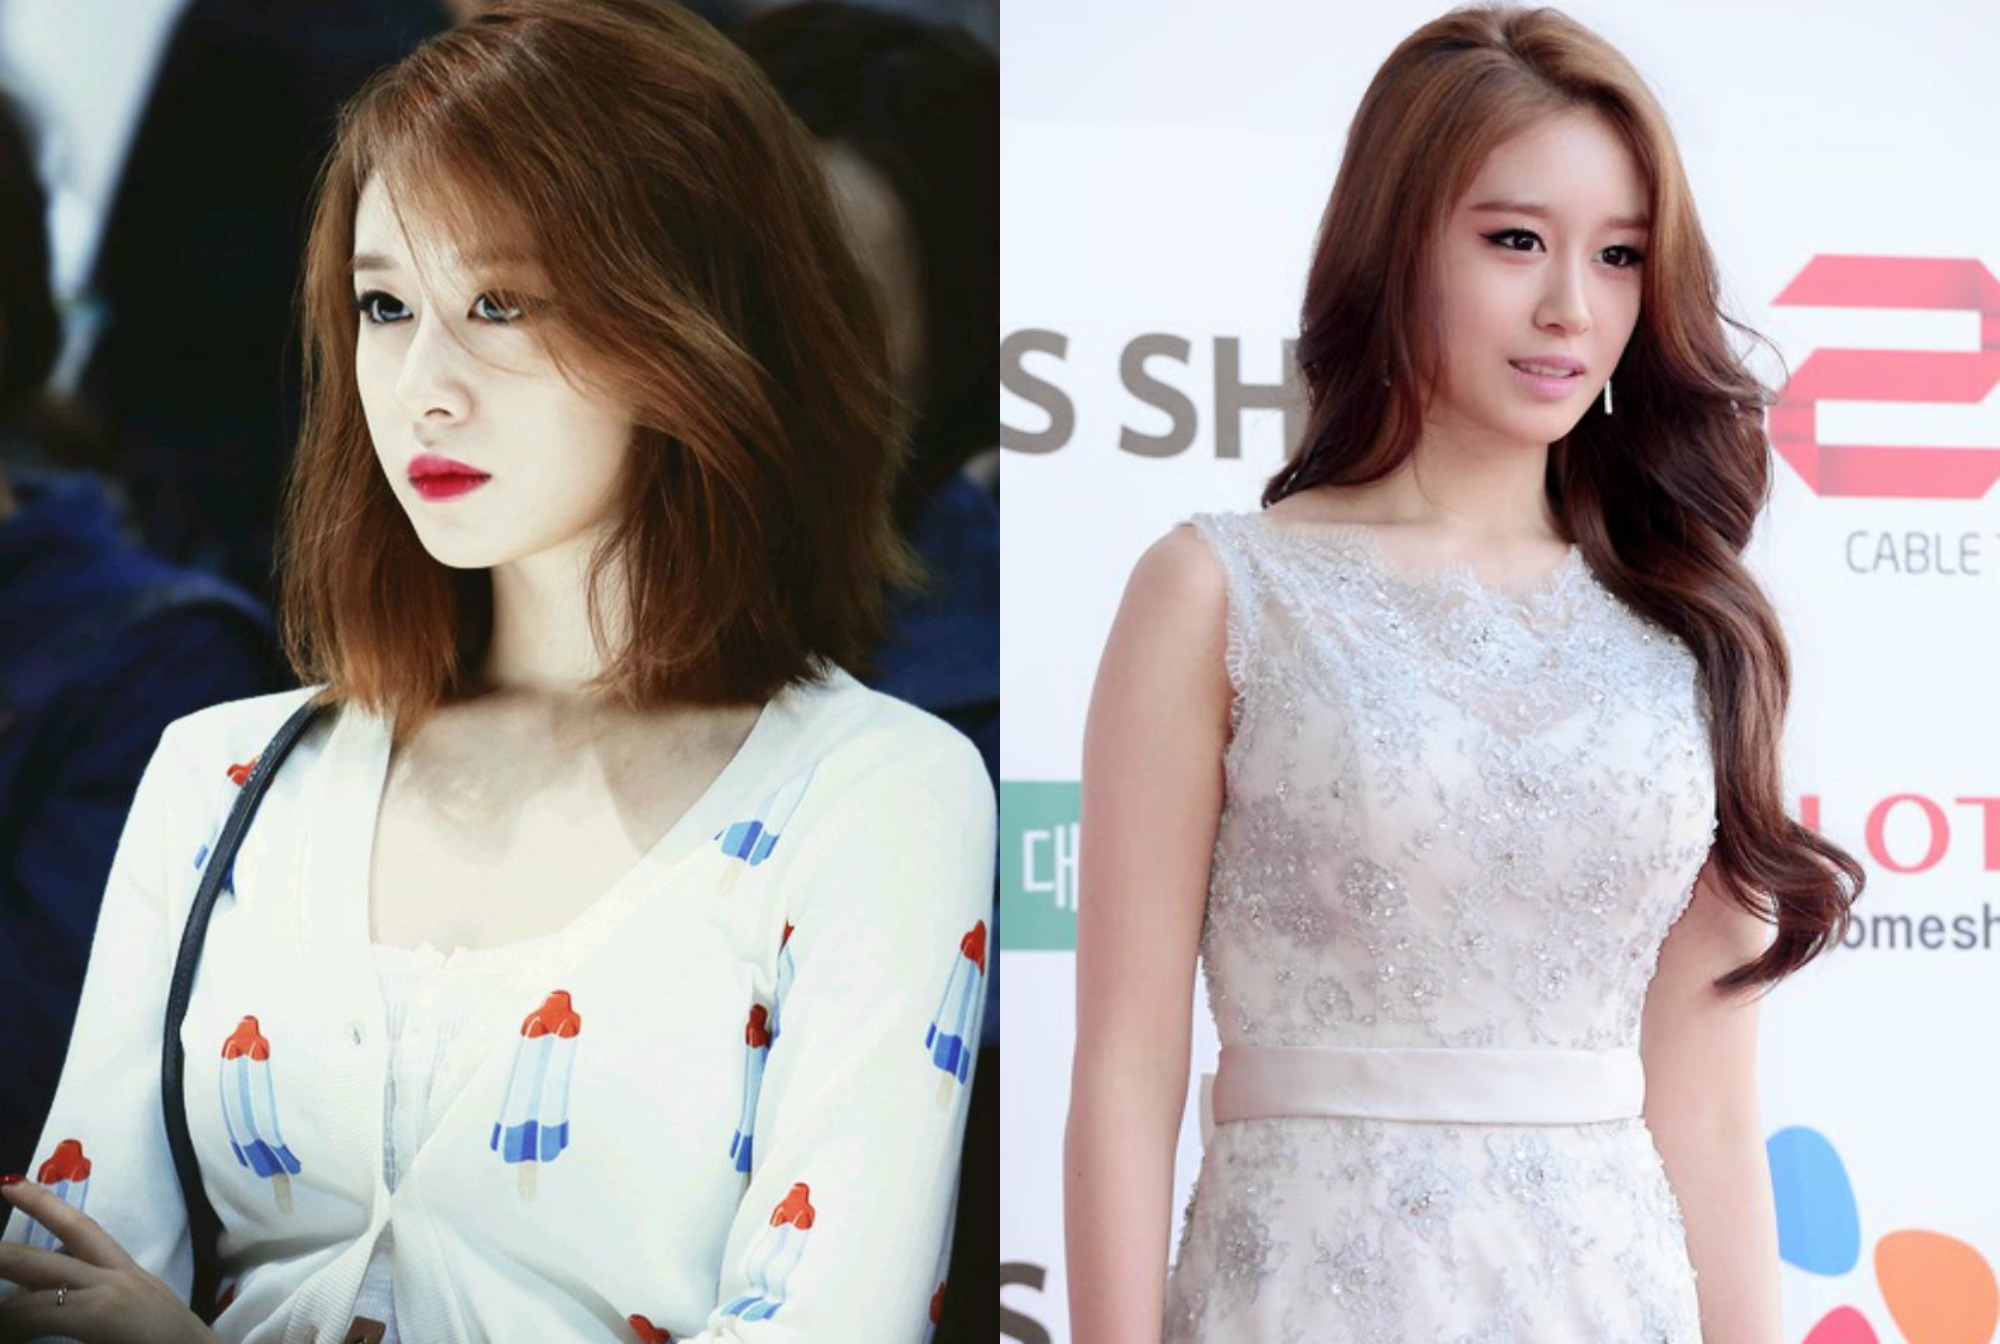 kpop girl group T-ARA Jiyeon haircut inspirations kpop idol short vs long hair